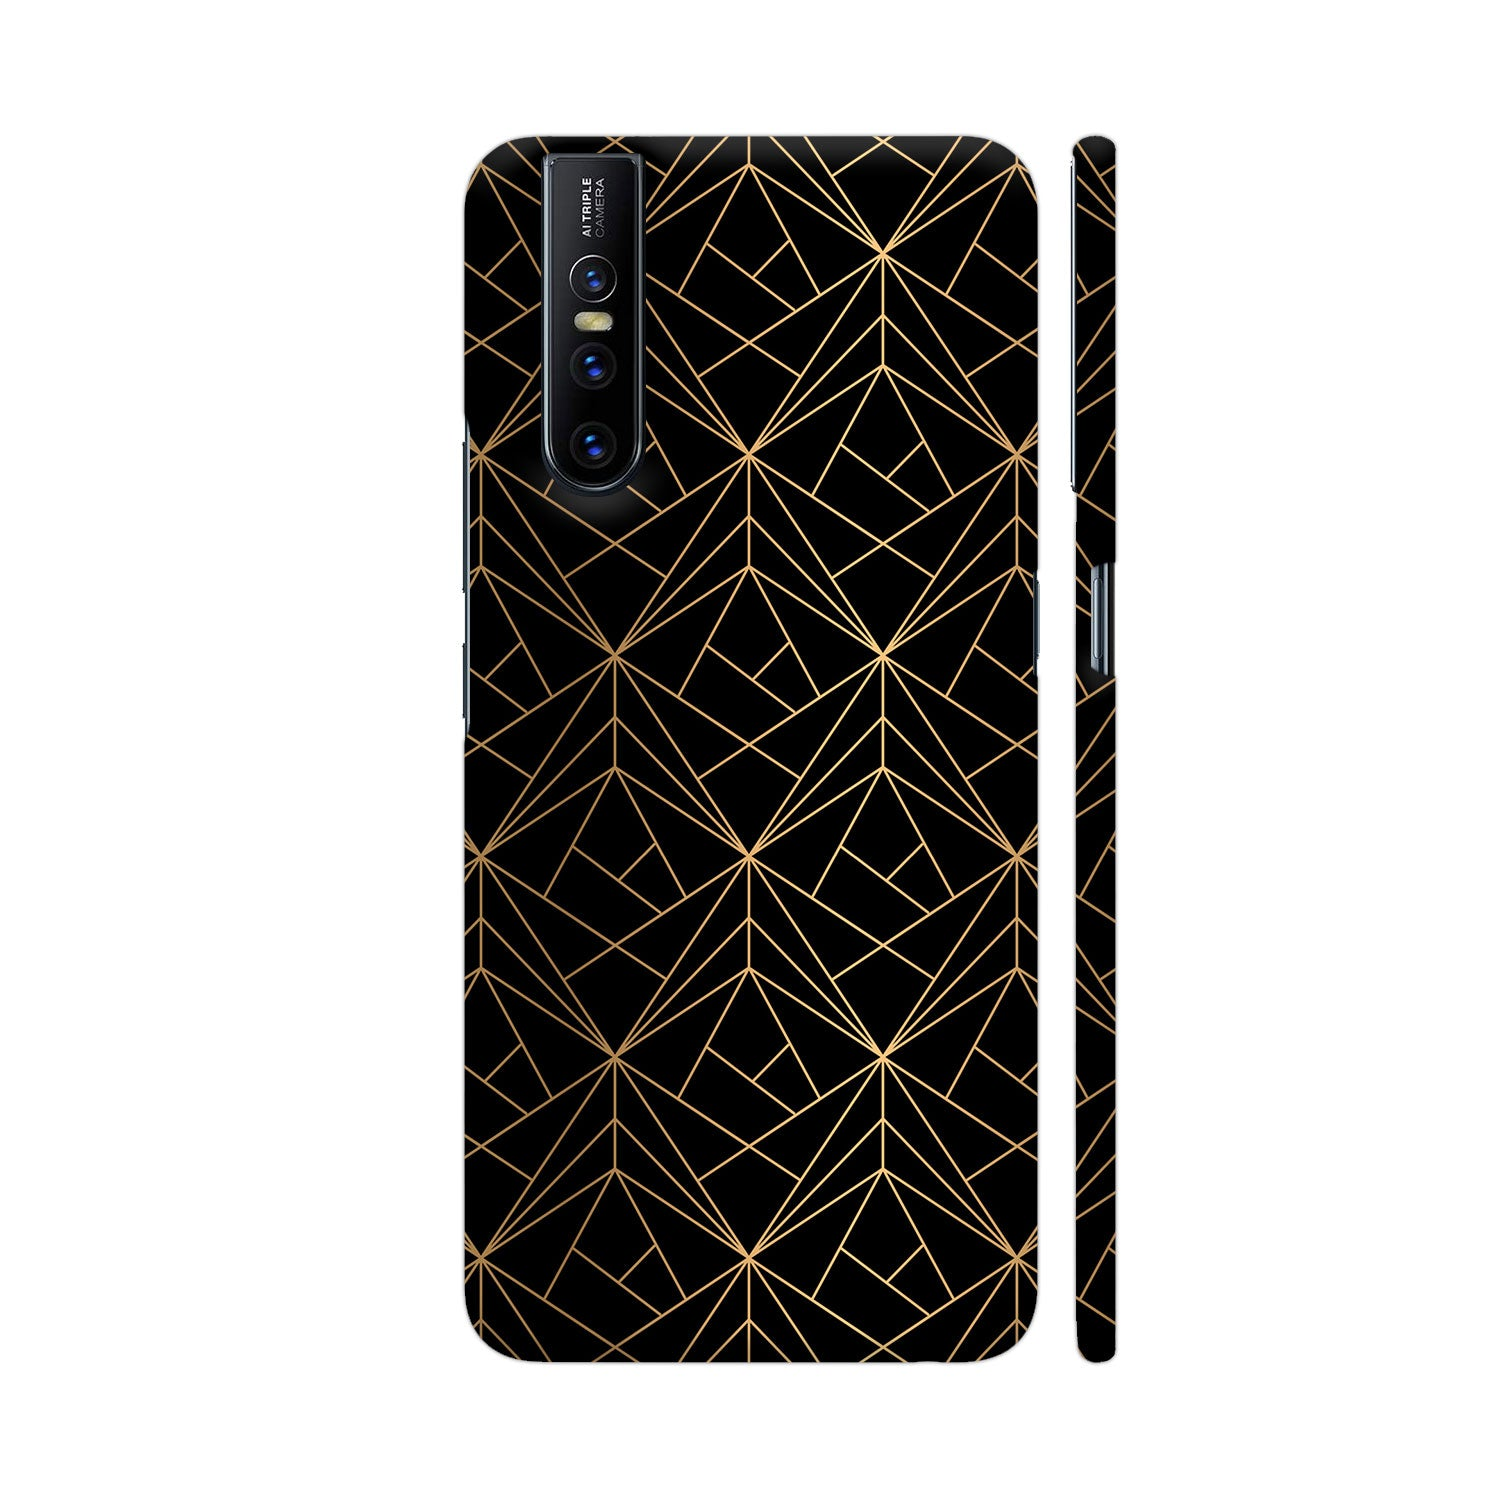 Cross Contour Series Slim Case And Cover For Vivo V15 Pro